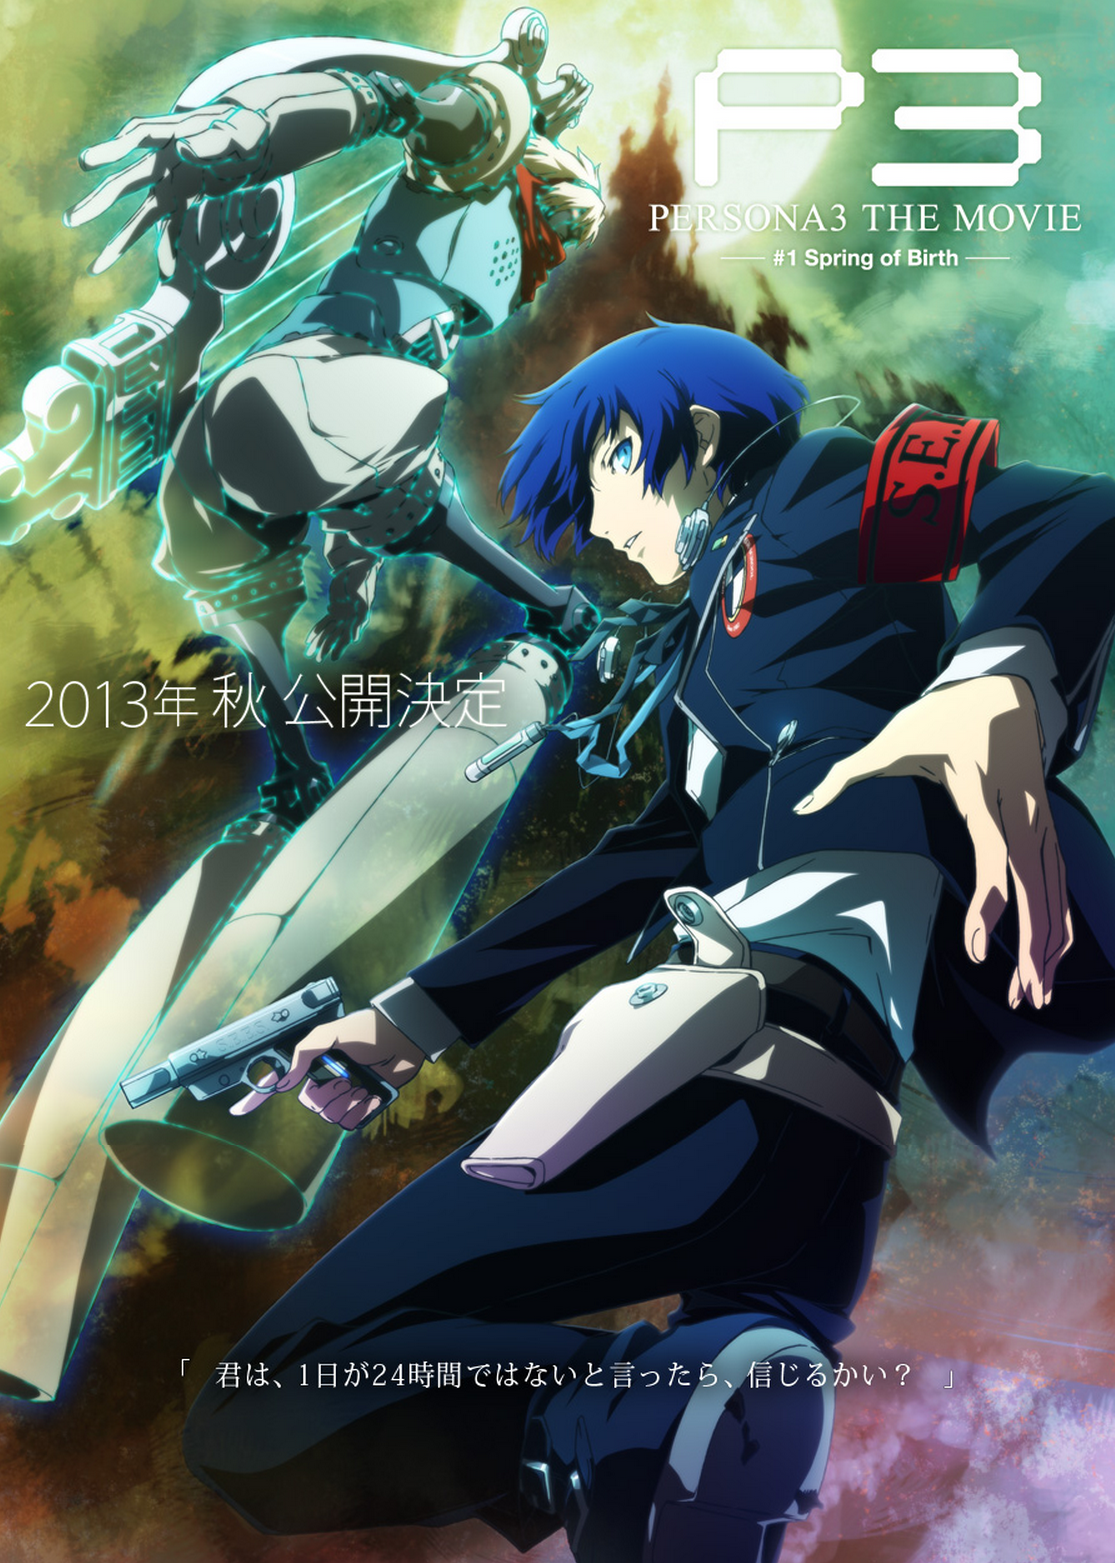 Midsummer Knight/'s Dream  Promotional Poster Type B Persona 3 The Movie 2 No